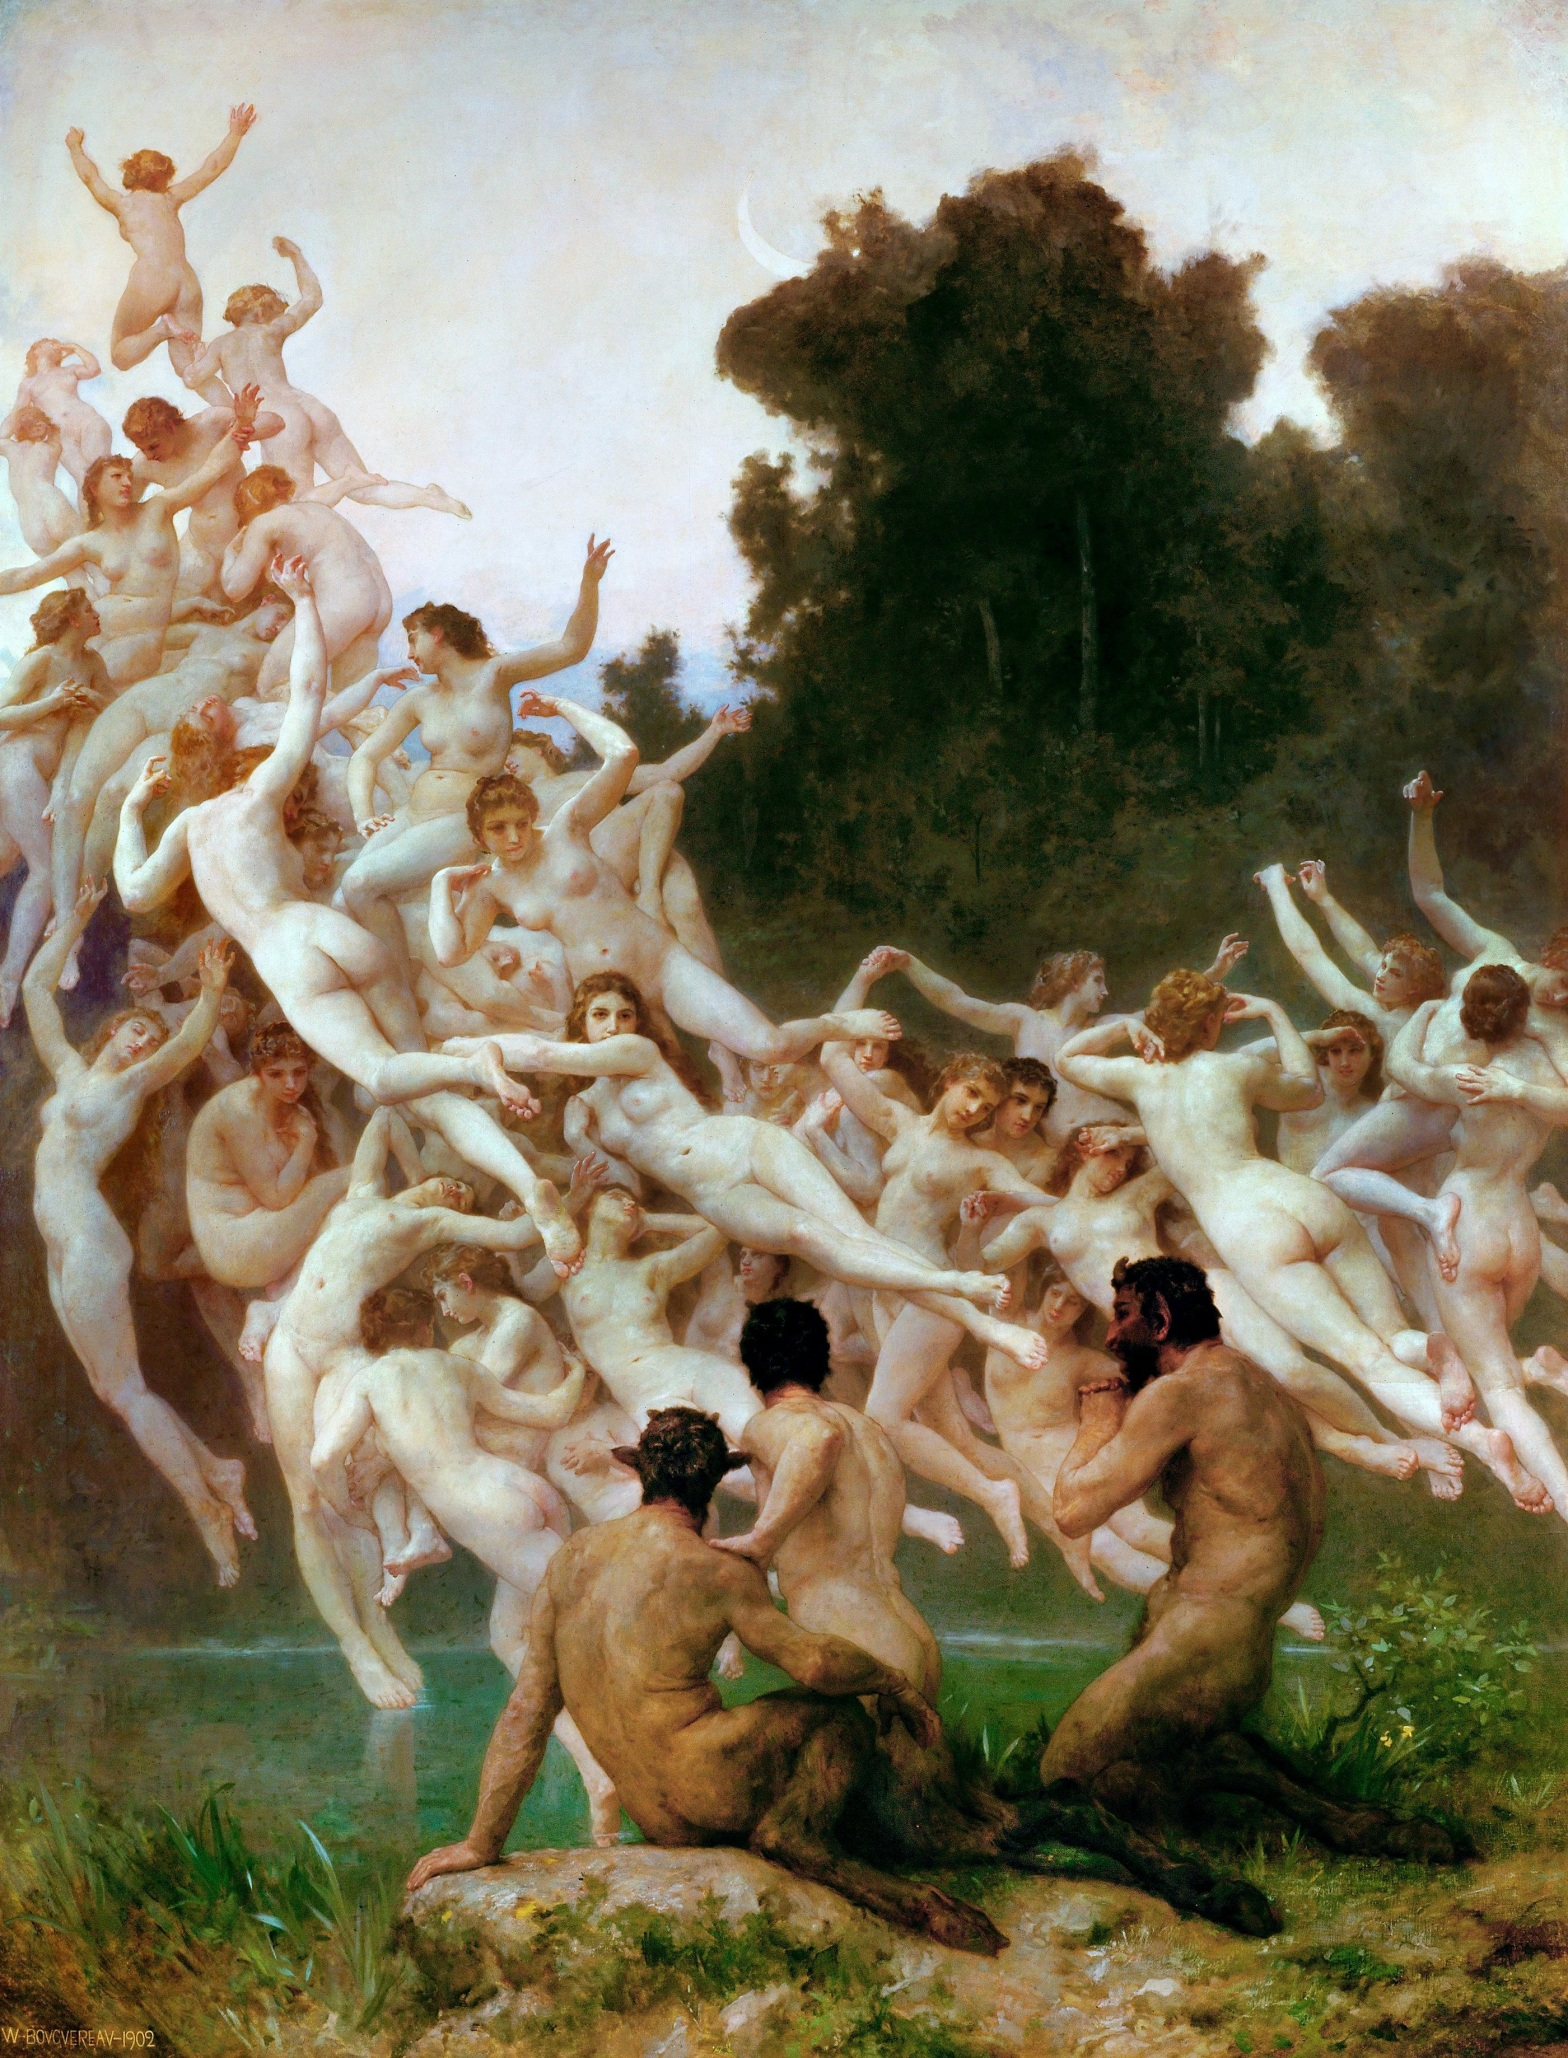 Les Oréades (1902) by William-Adolphe Bouguereau, in Musée d'Orsay